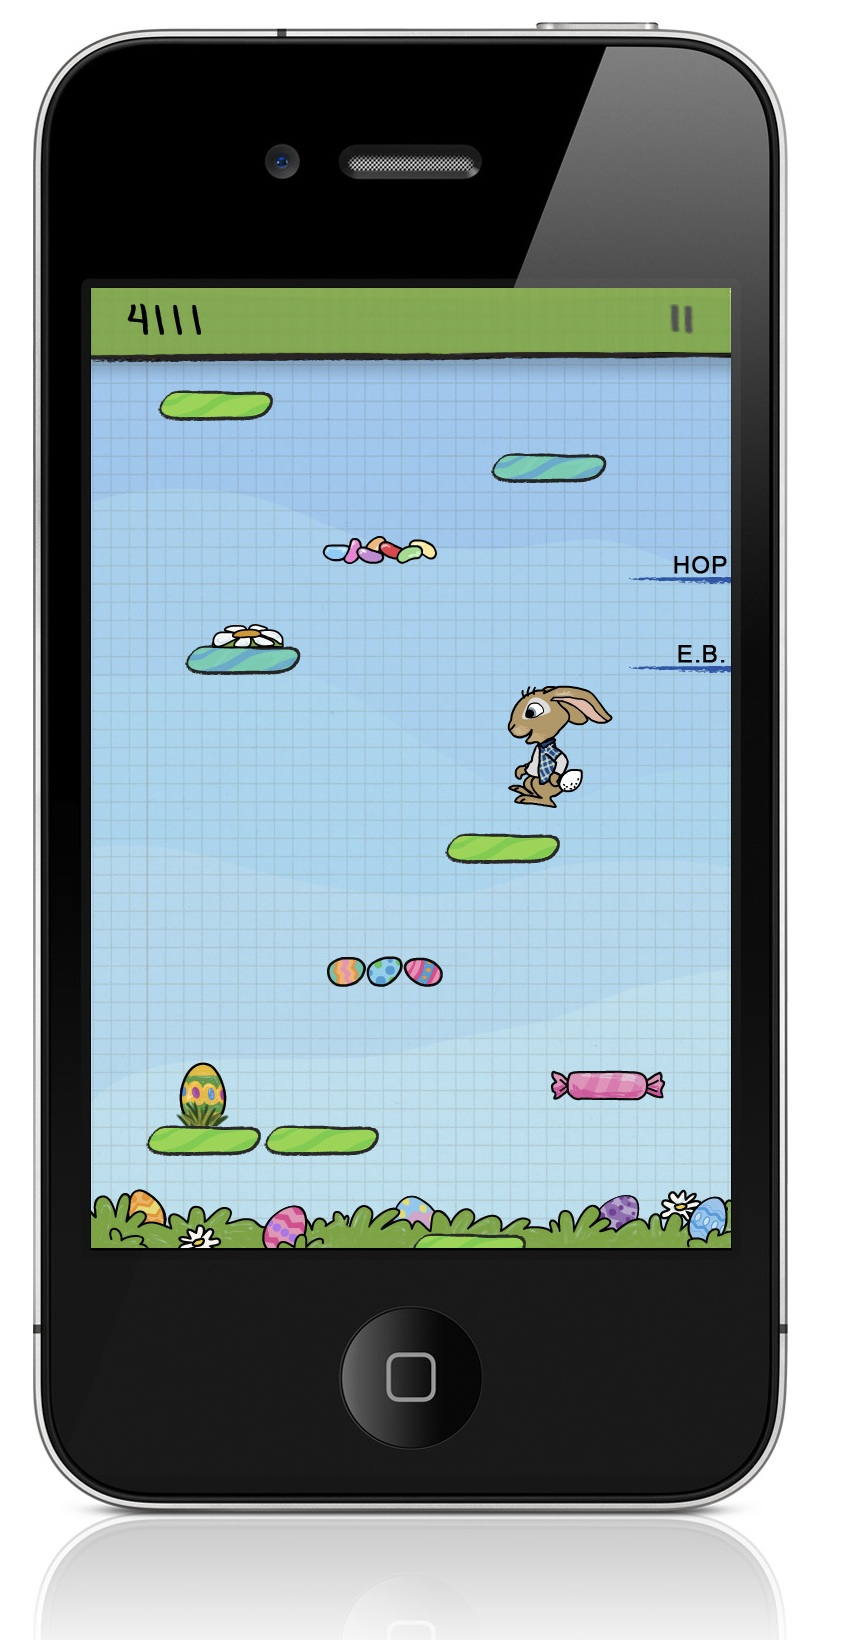 Doodle Jump collaborates with Hop movie for Easter update